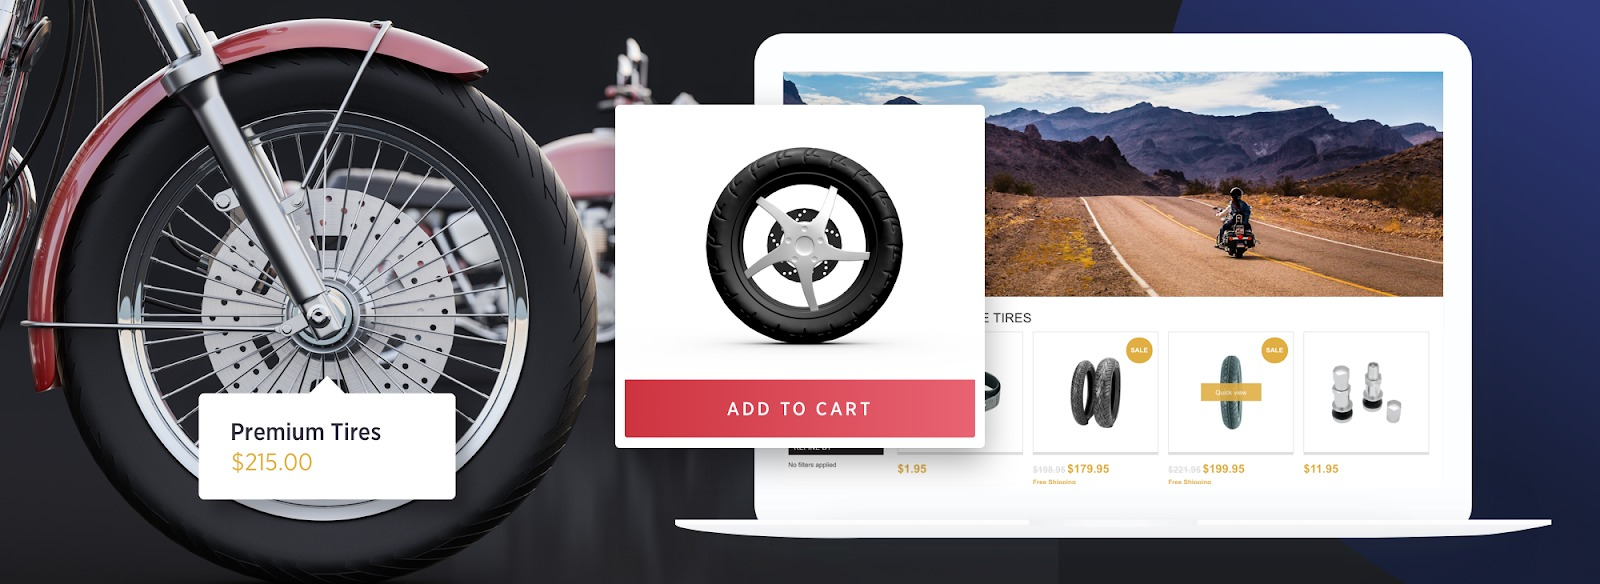 Garage Auto 95 Automotive Ecommerce Websites Examples Of Car Auto Part Stores